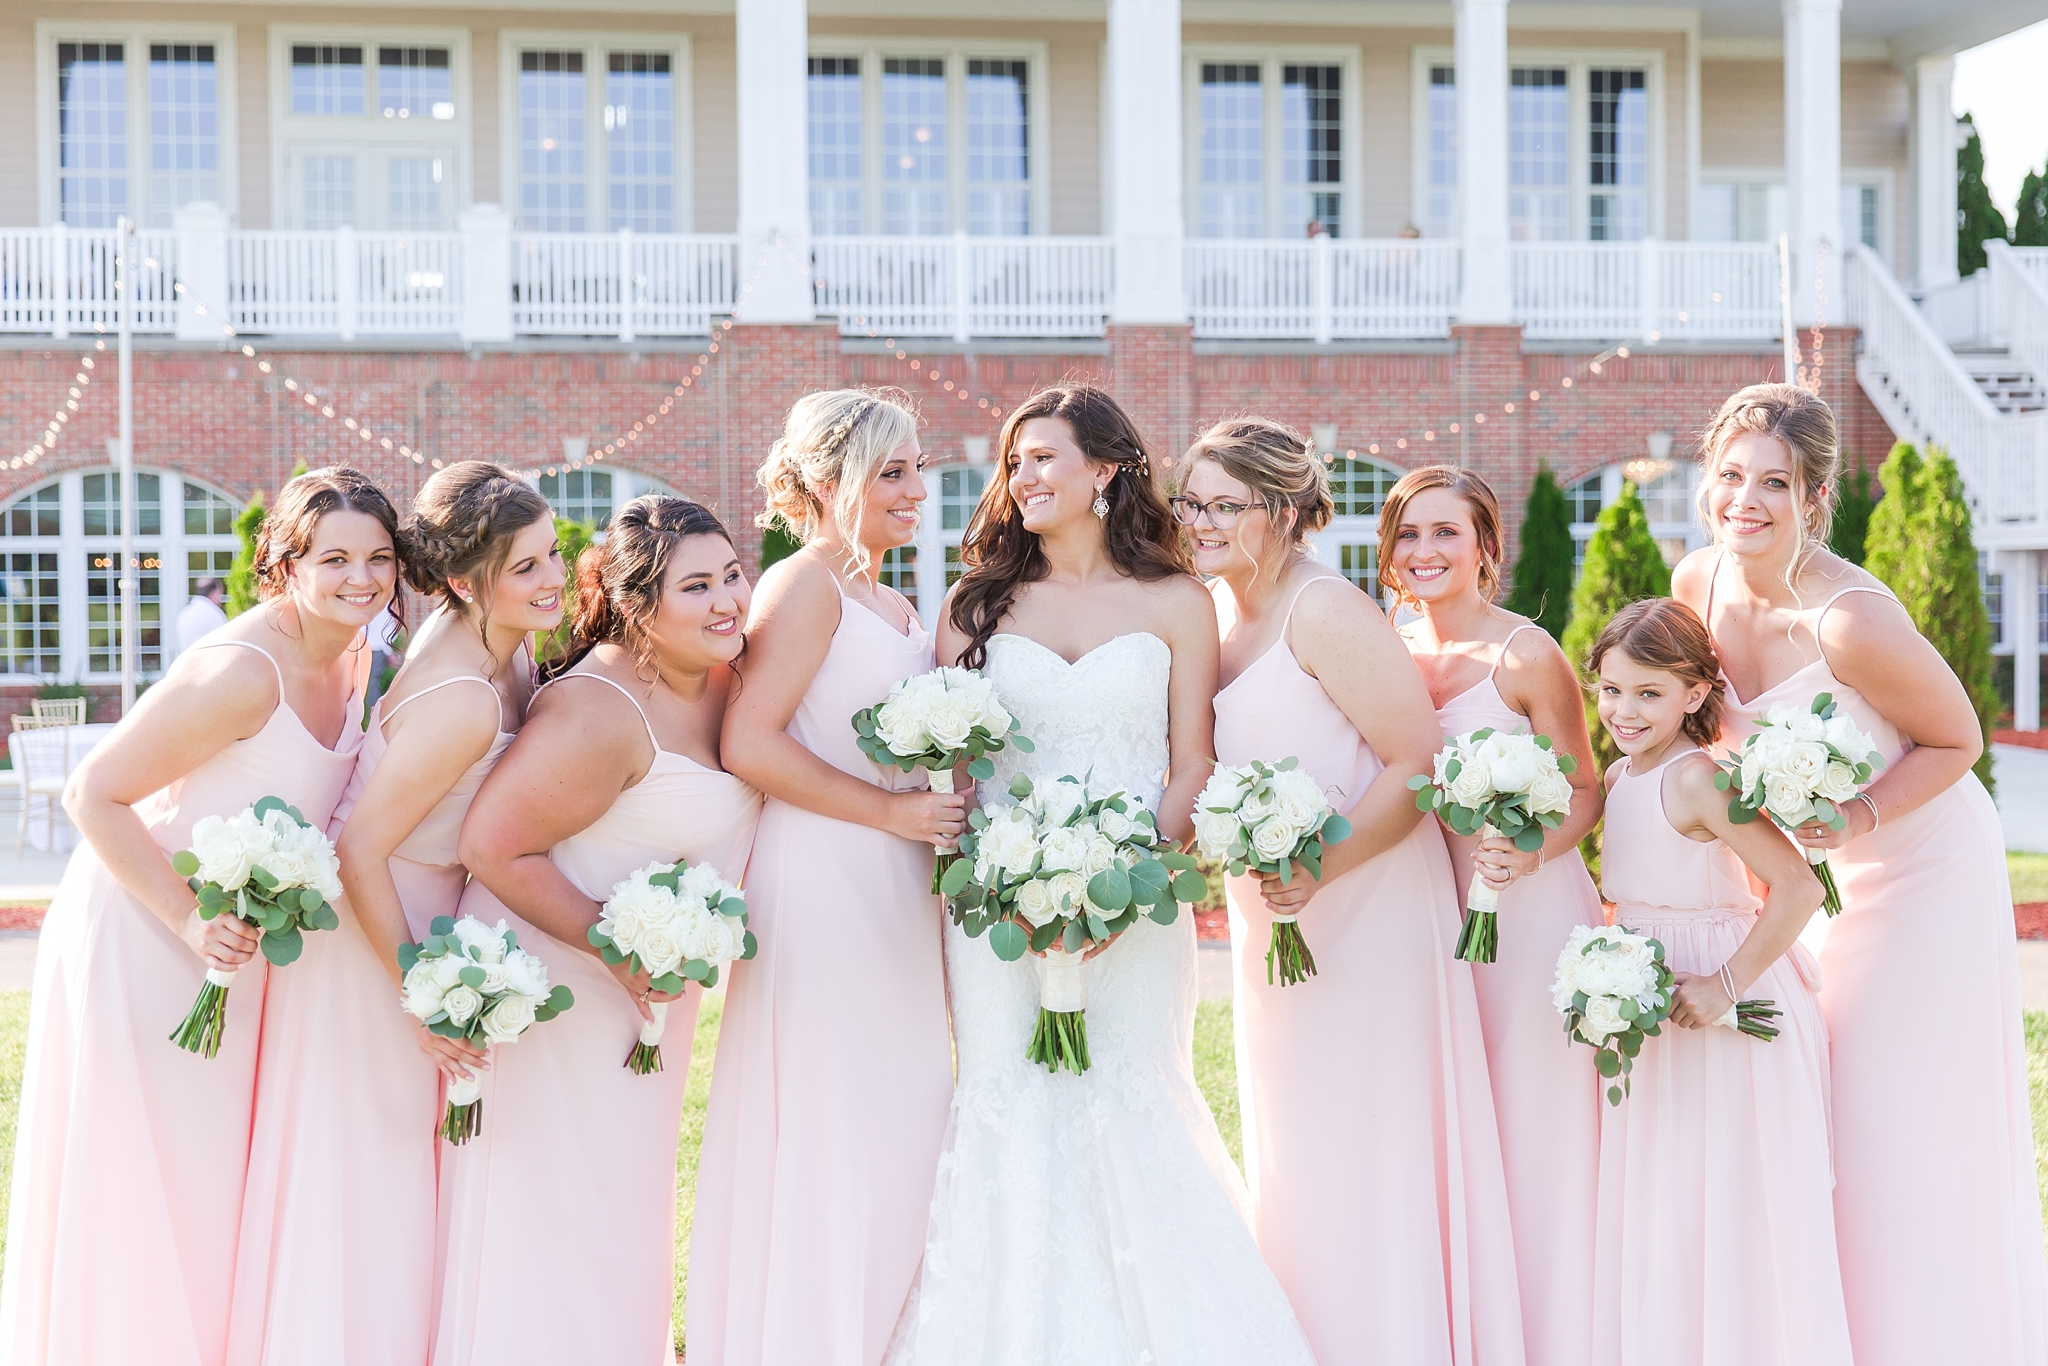 candid-timeless-wedding-photos-at-the-captains-club-in-grand-blanc-michigan-by-courtney-carolyn-photography_0081.jpg